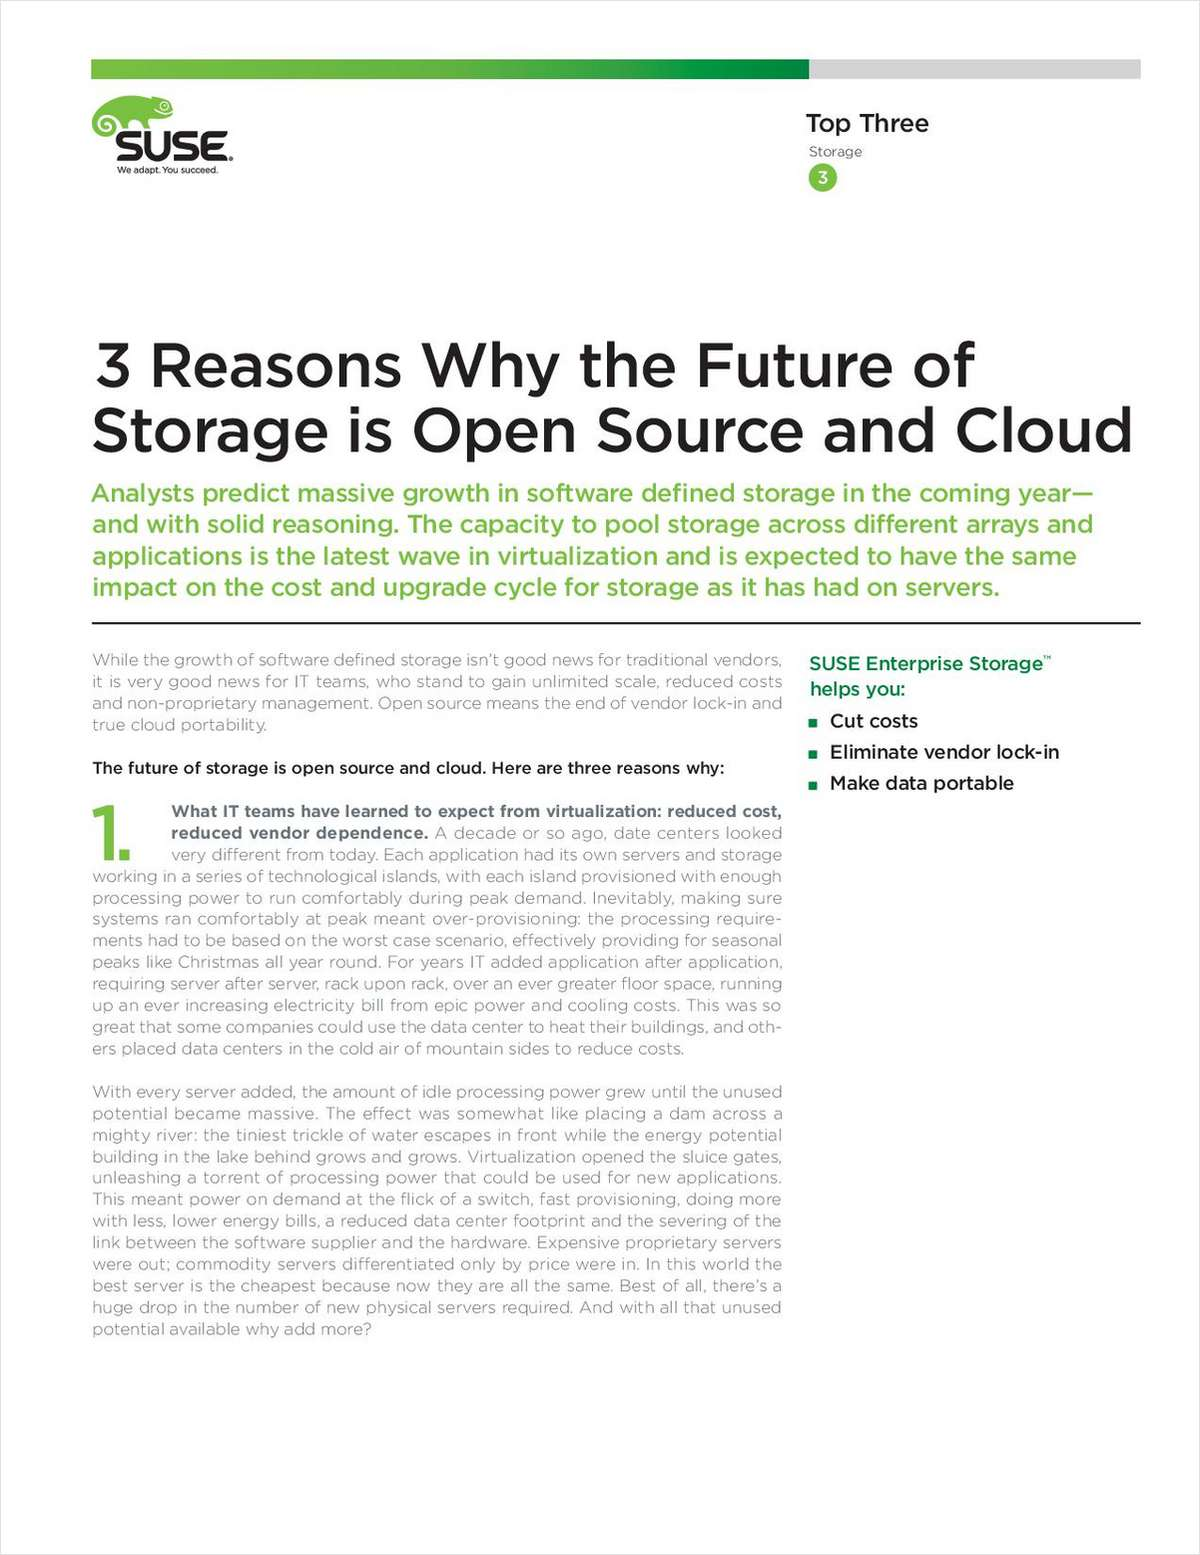 3 Reasons Why the Future of Storage is Open Source and Cloud